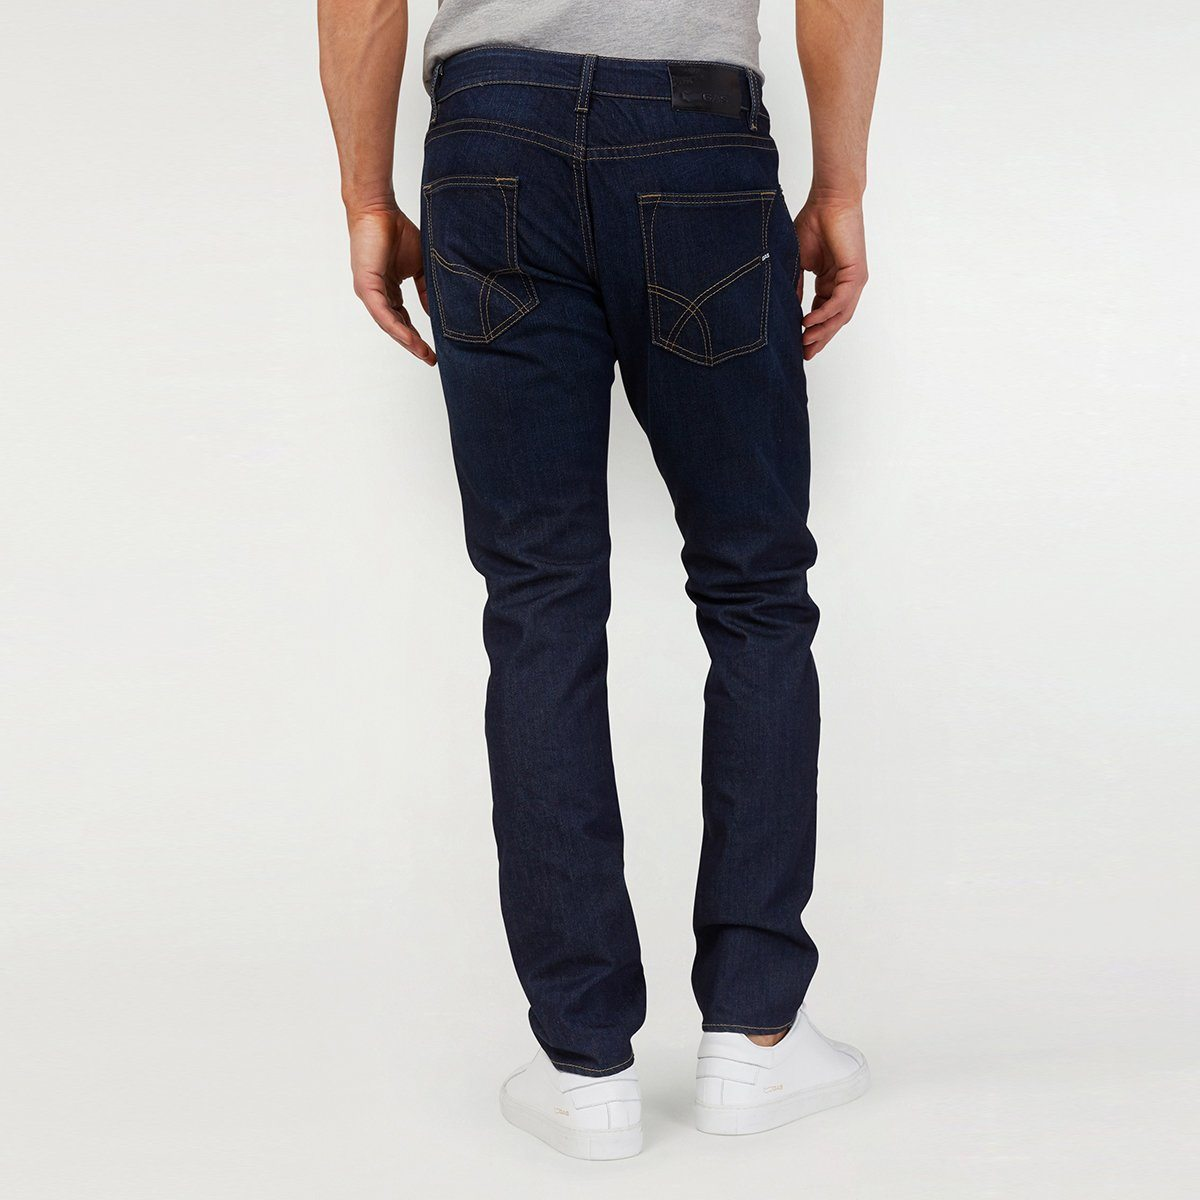 Exclusive norton carrot wk12 'slim fit' stretch jeans